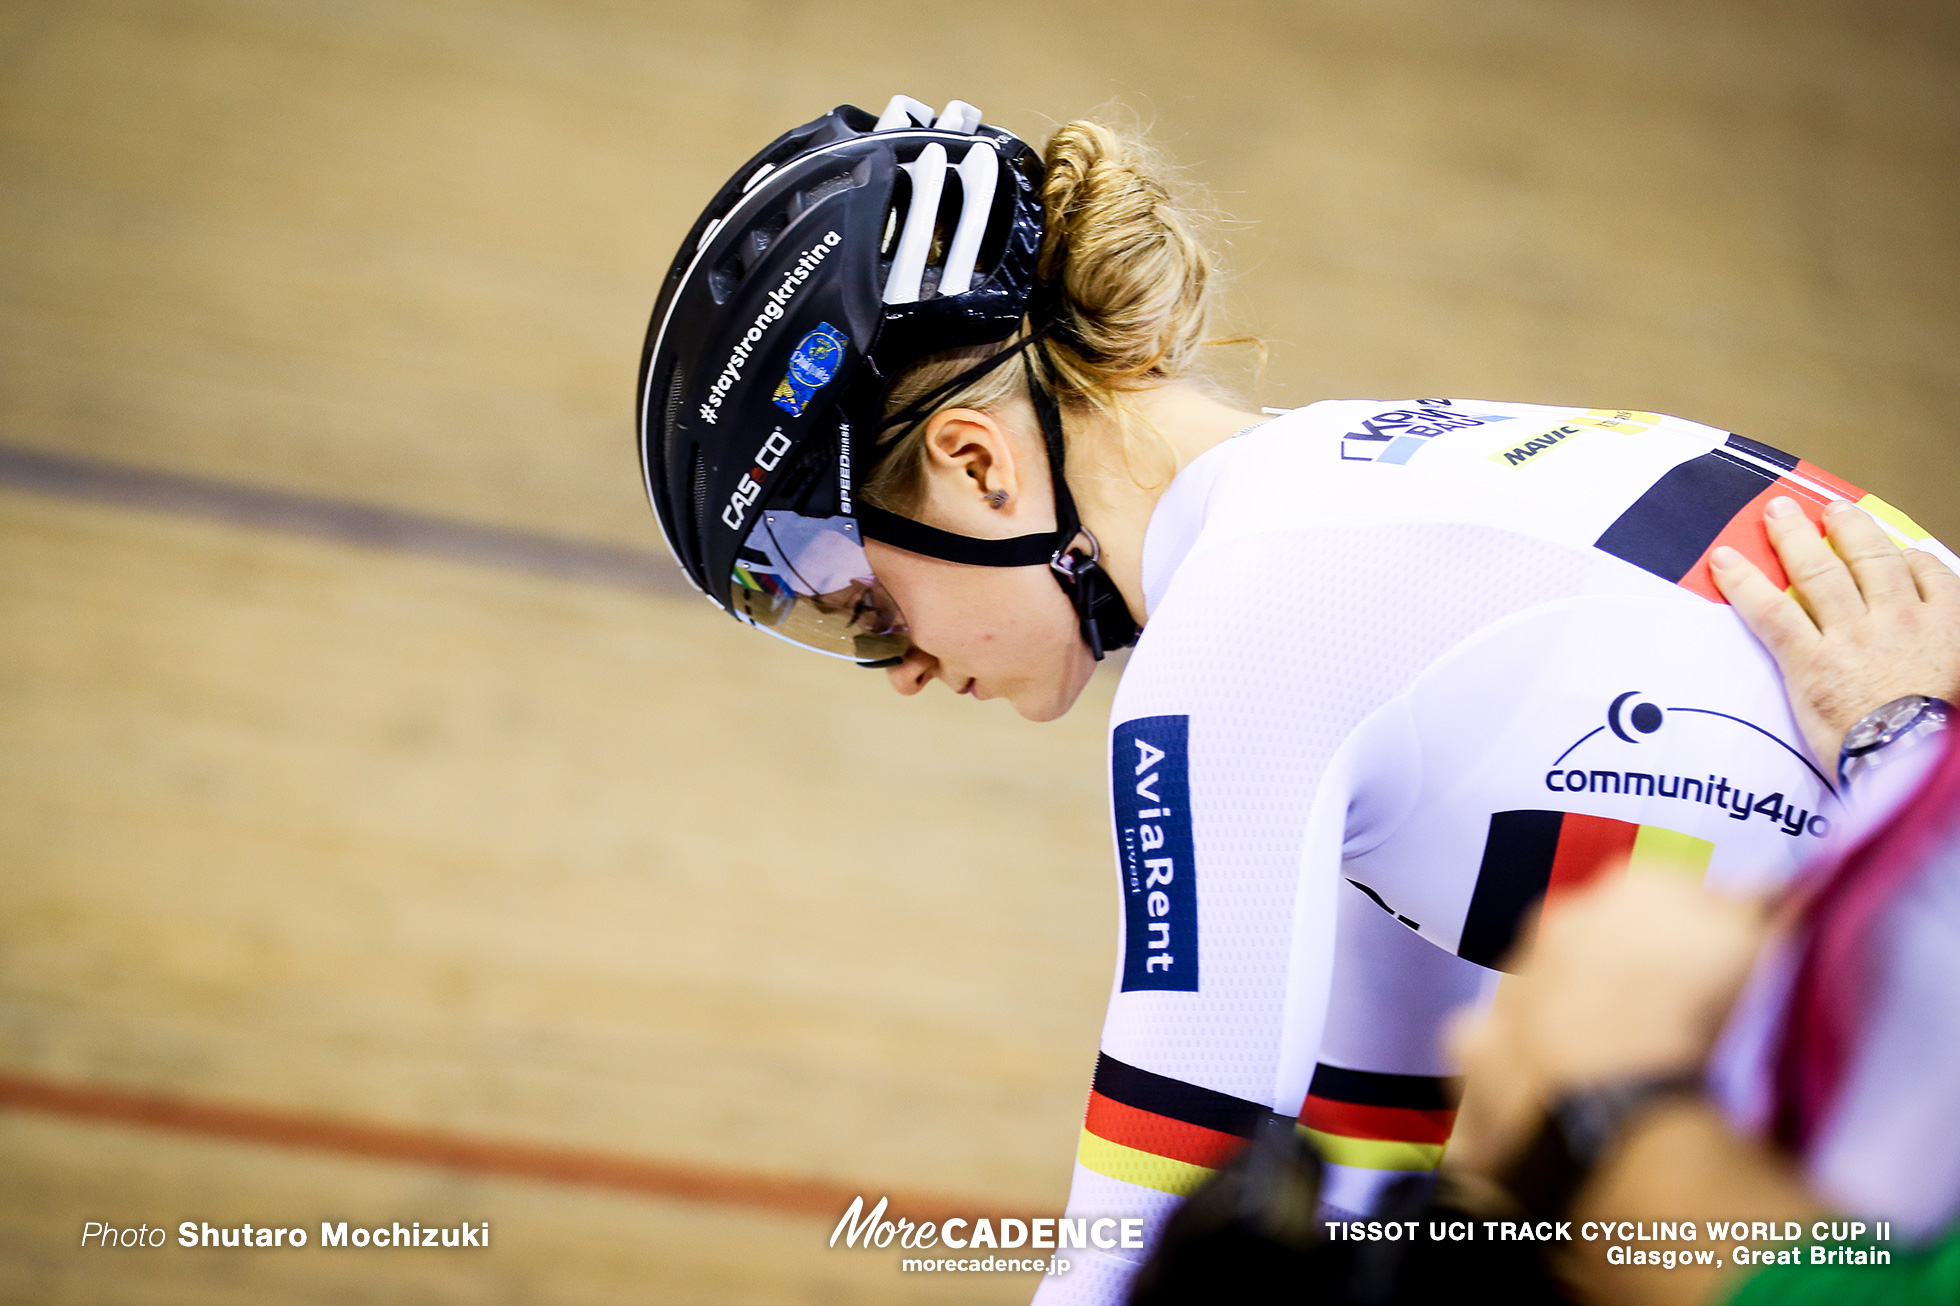 Final / Women's Sprint / TISSOT UCI TRACK CYCLING WORLD CUP II, Glasgow, Great Britain